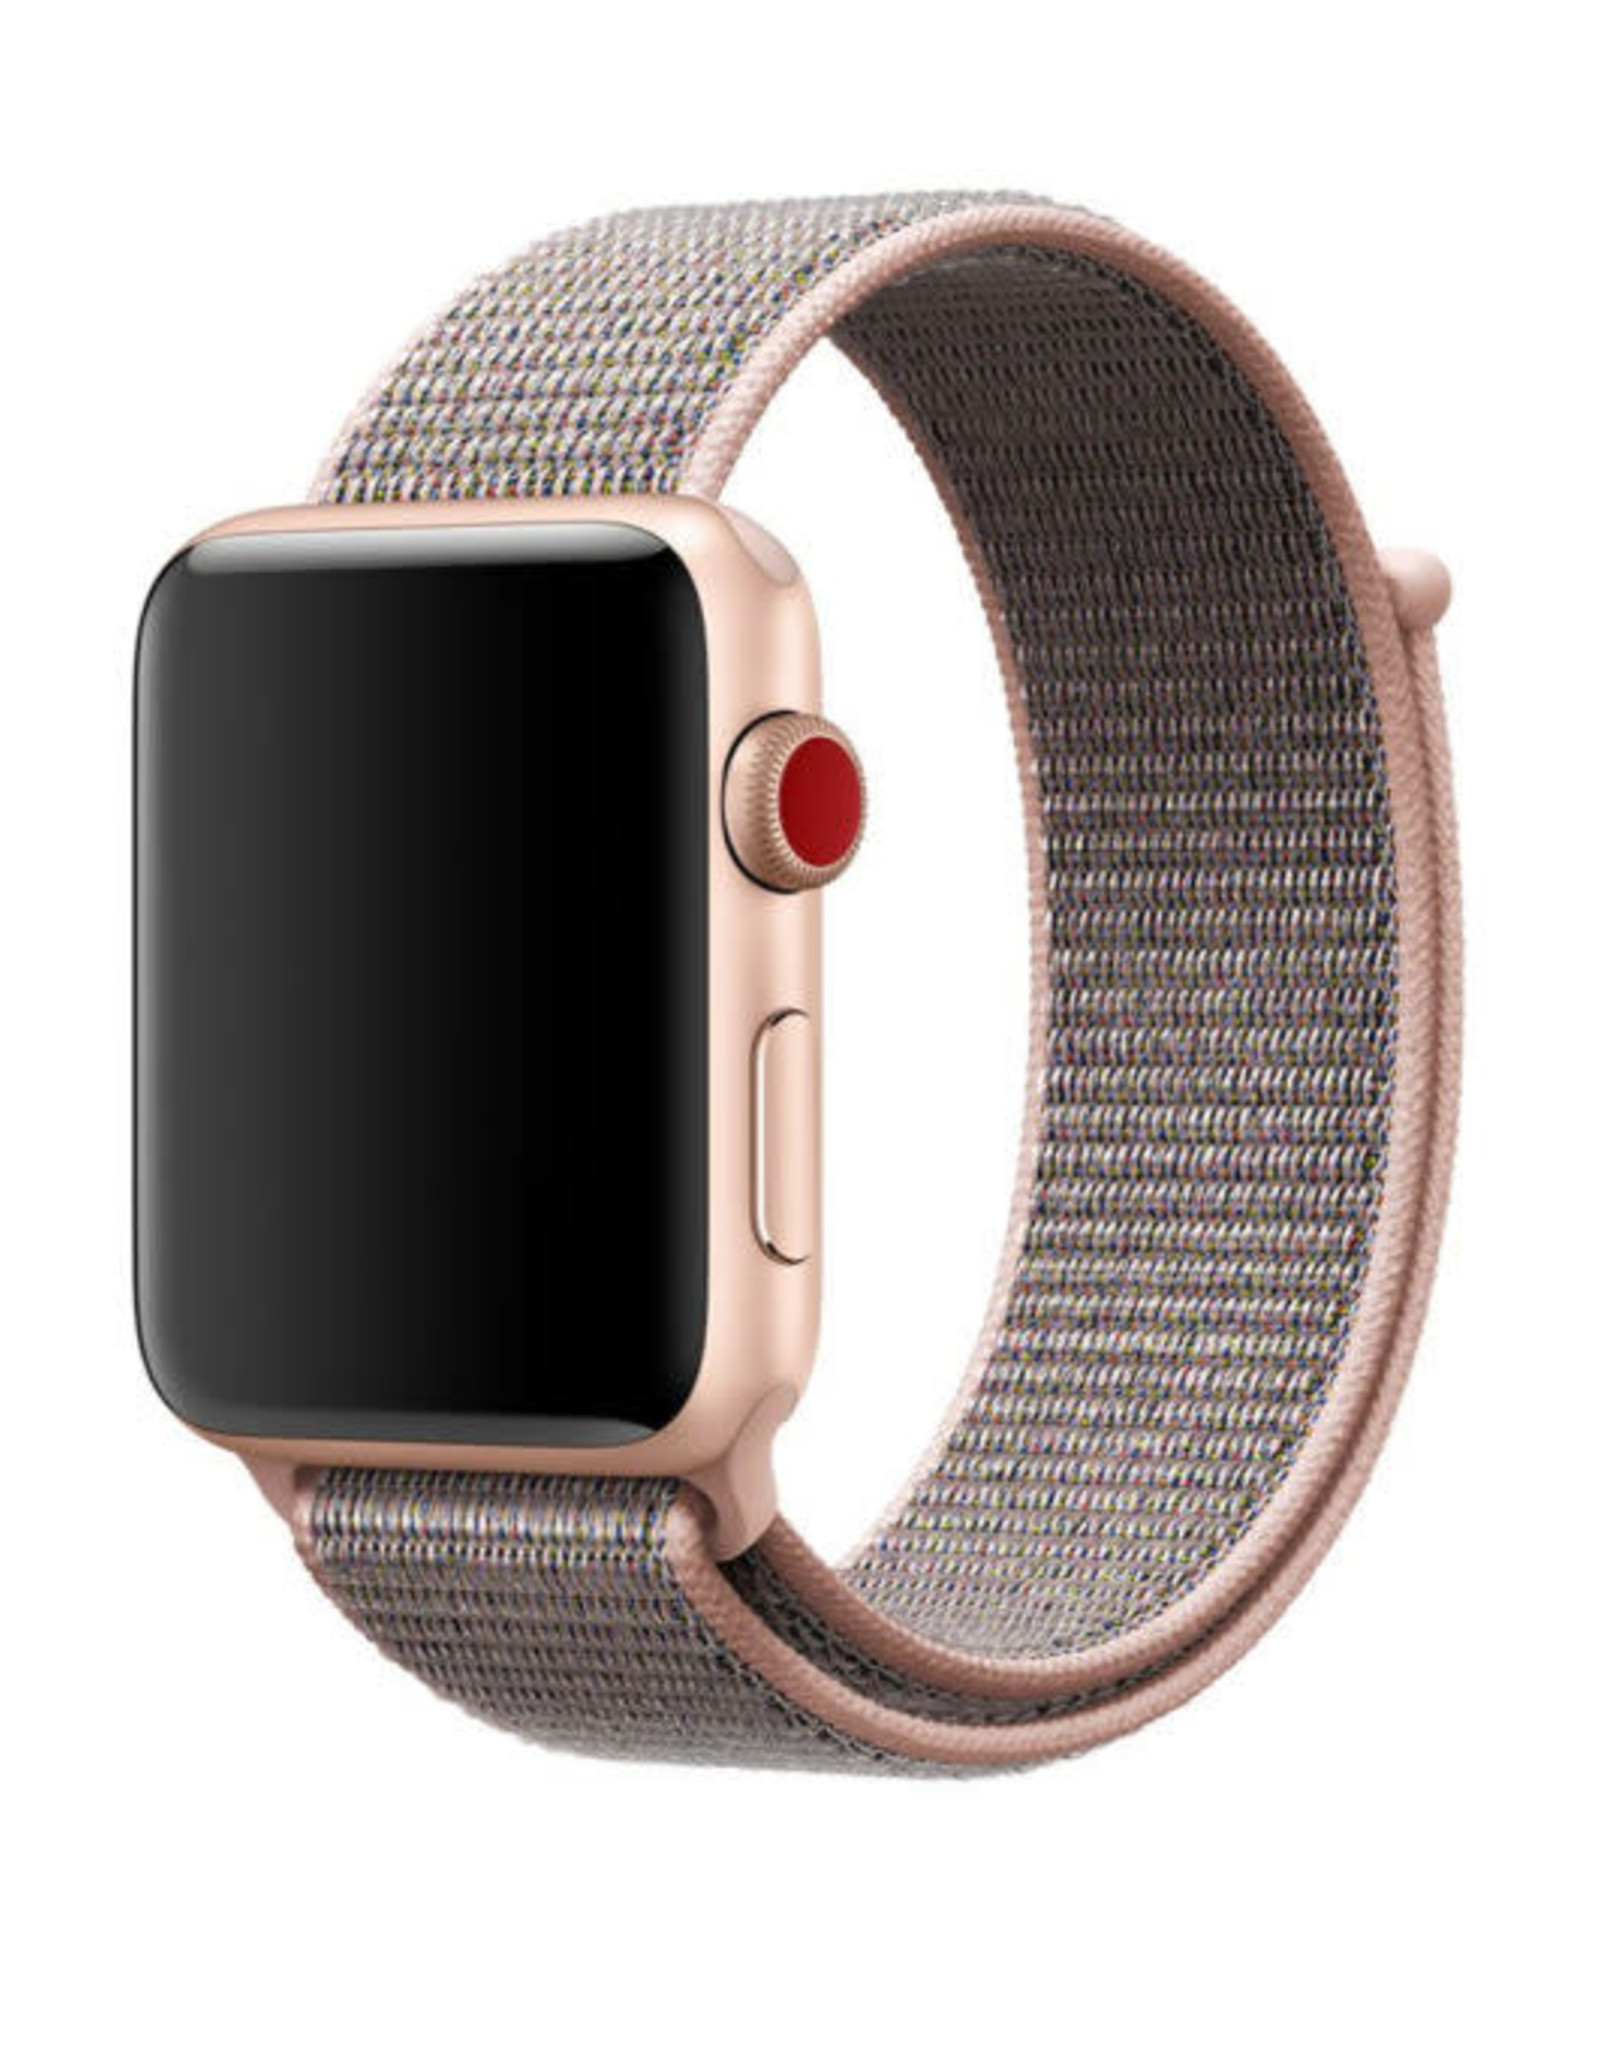 StrapsCo | Nylon Band For iWatch 38mm/40mm Pink/Grey  A.NY3.13.7.38